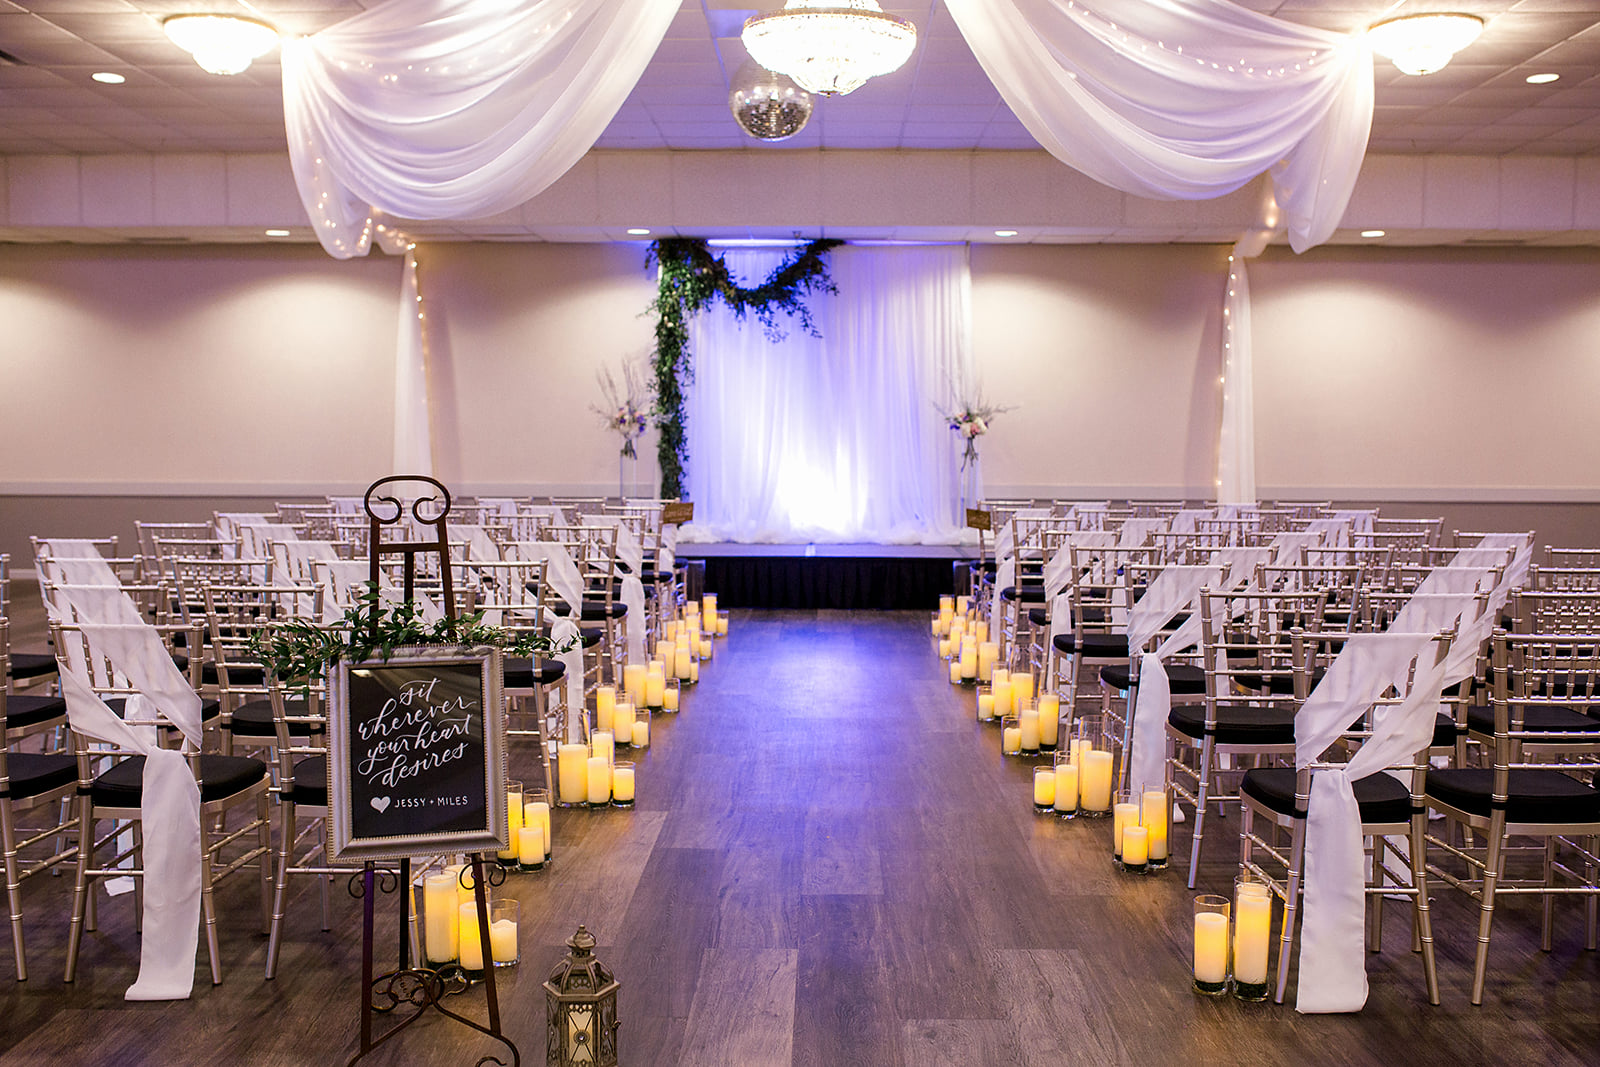 Royal Cliff banquet hall, stage with pipe and drape ceremony backdrop for indoor ceremony with candles